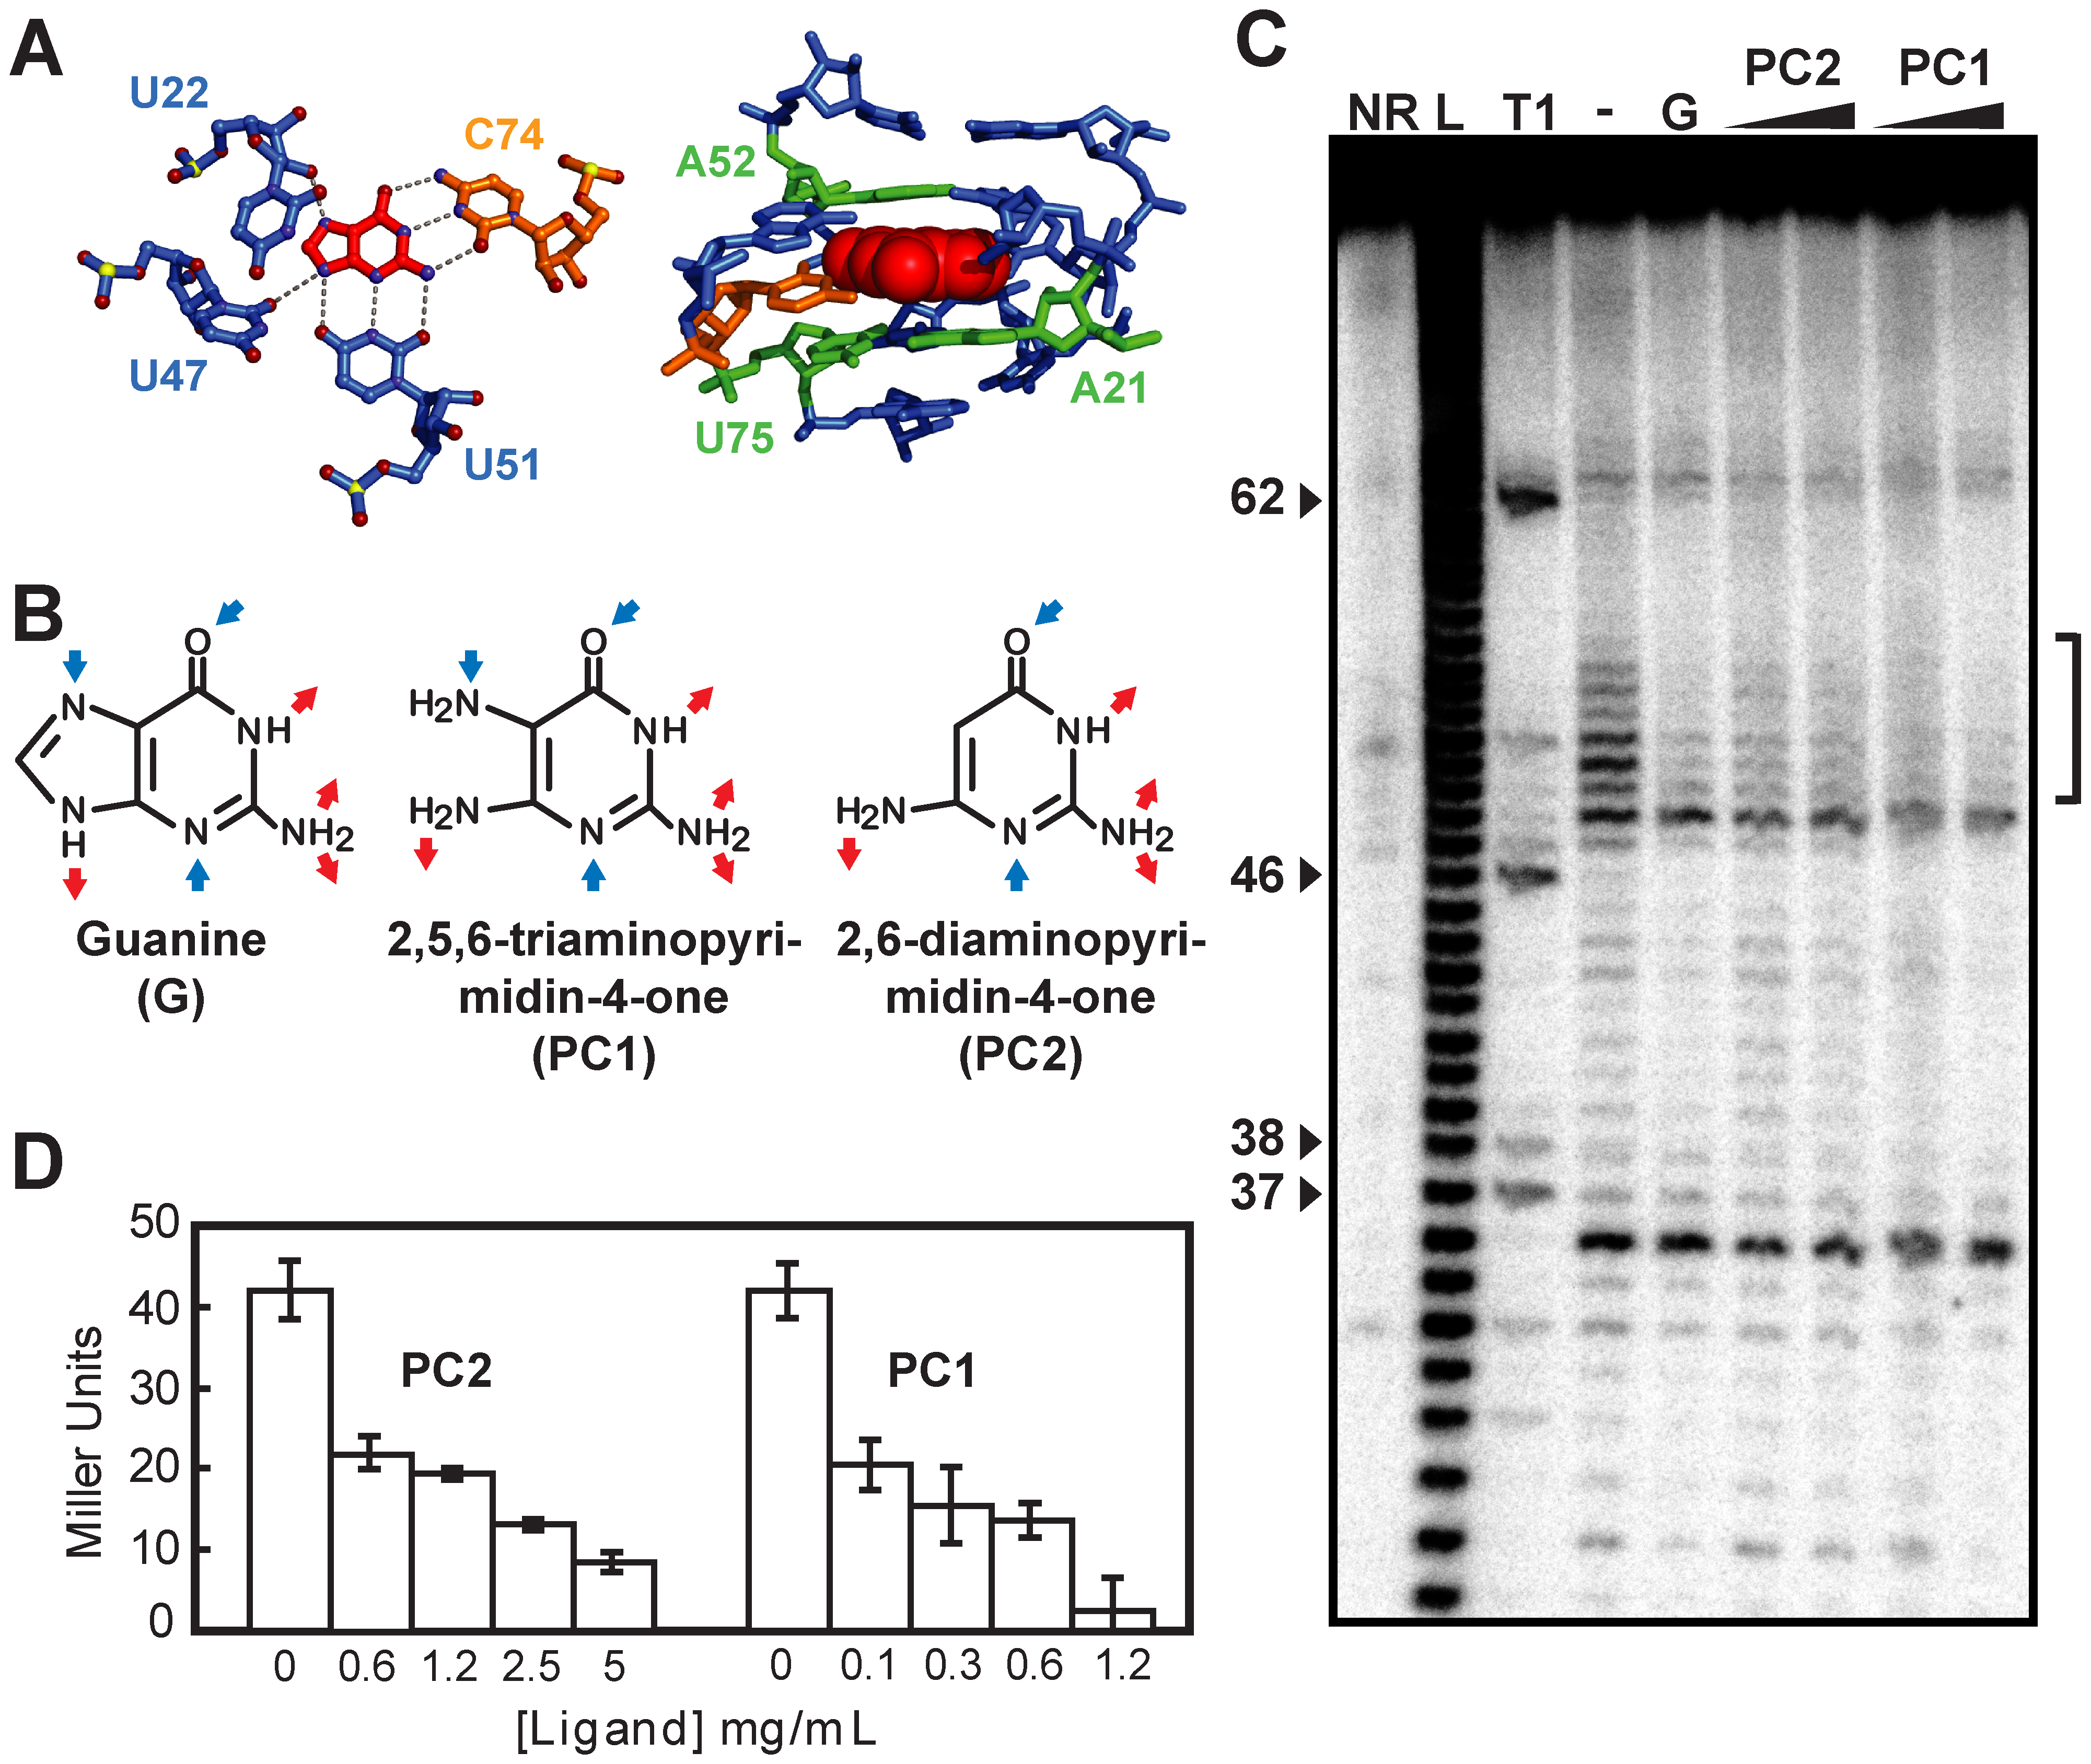 Guanine riboswitch agonists can be used to modulate gene expression.